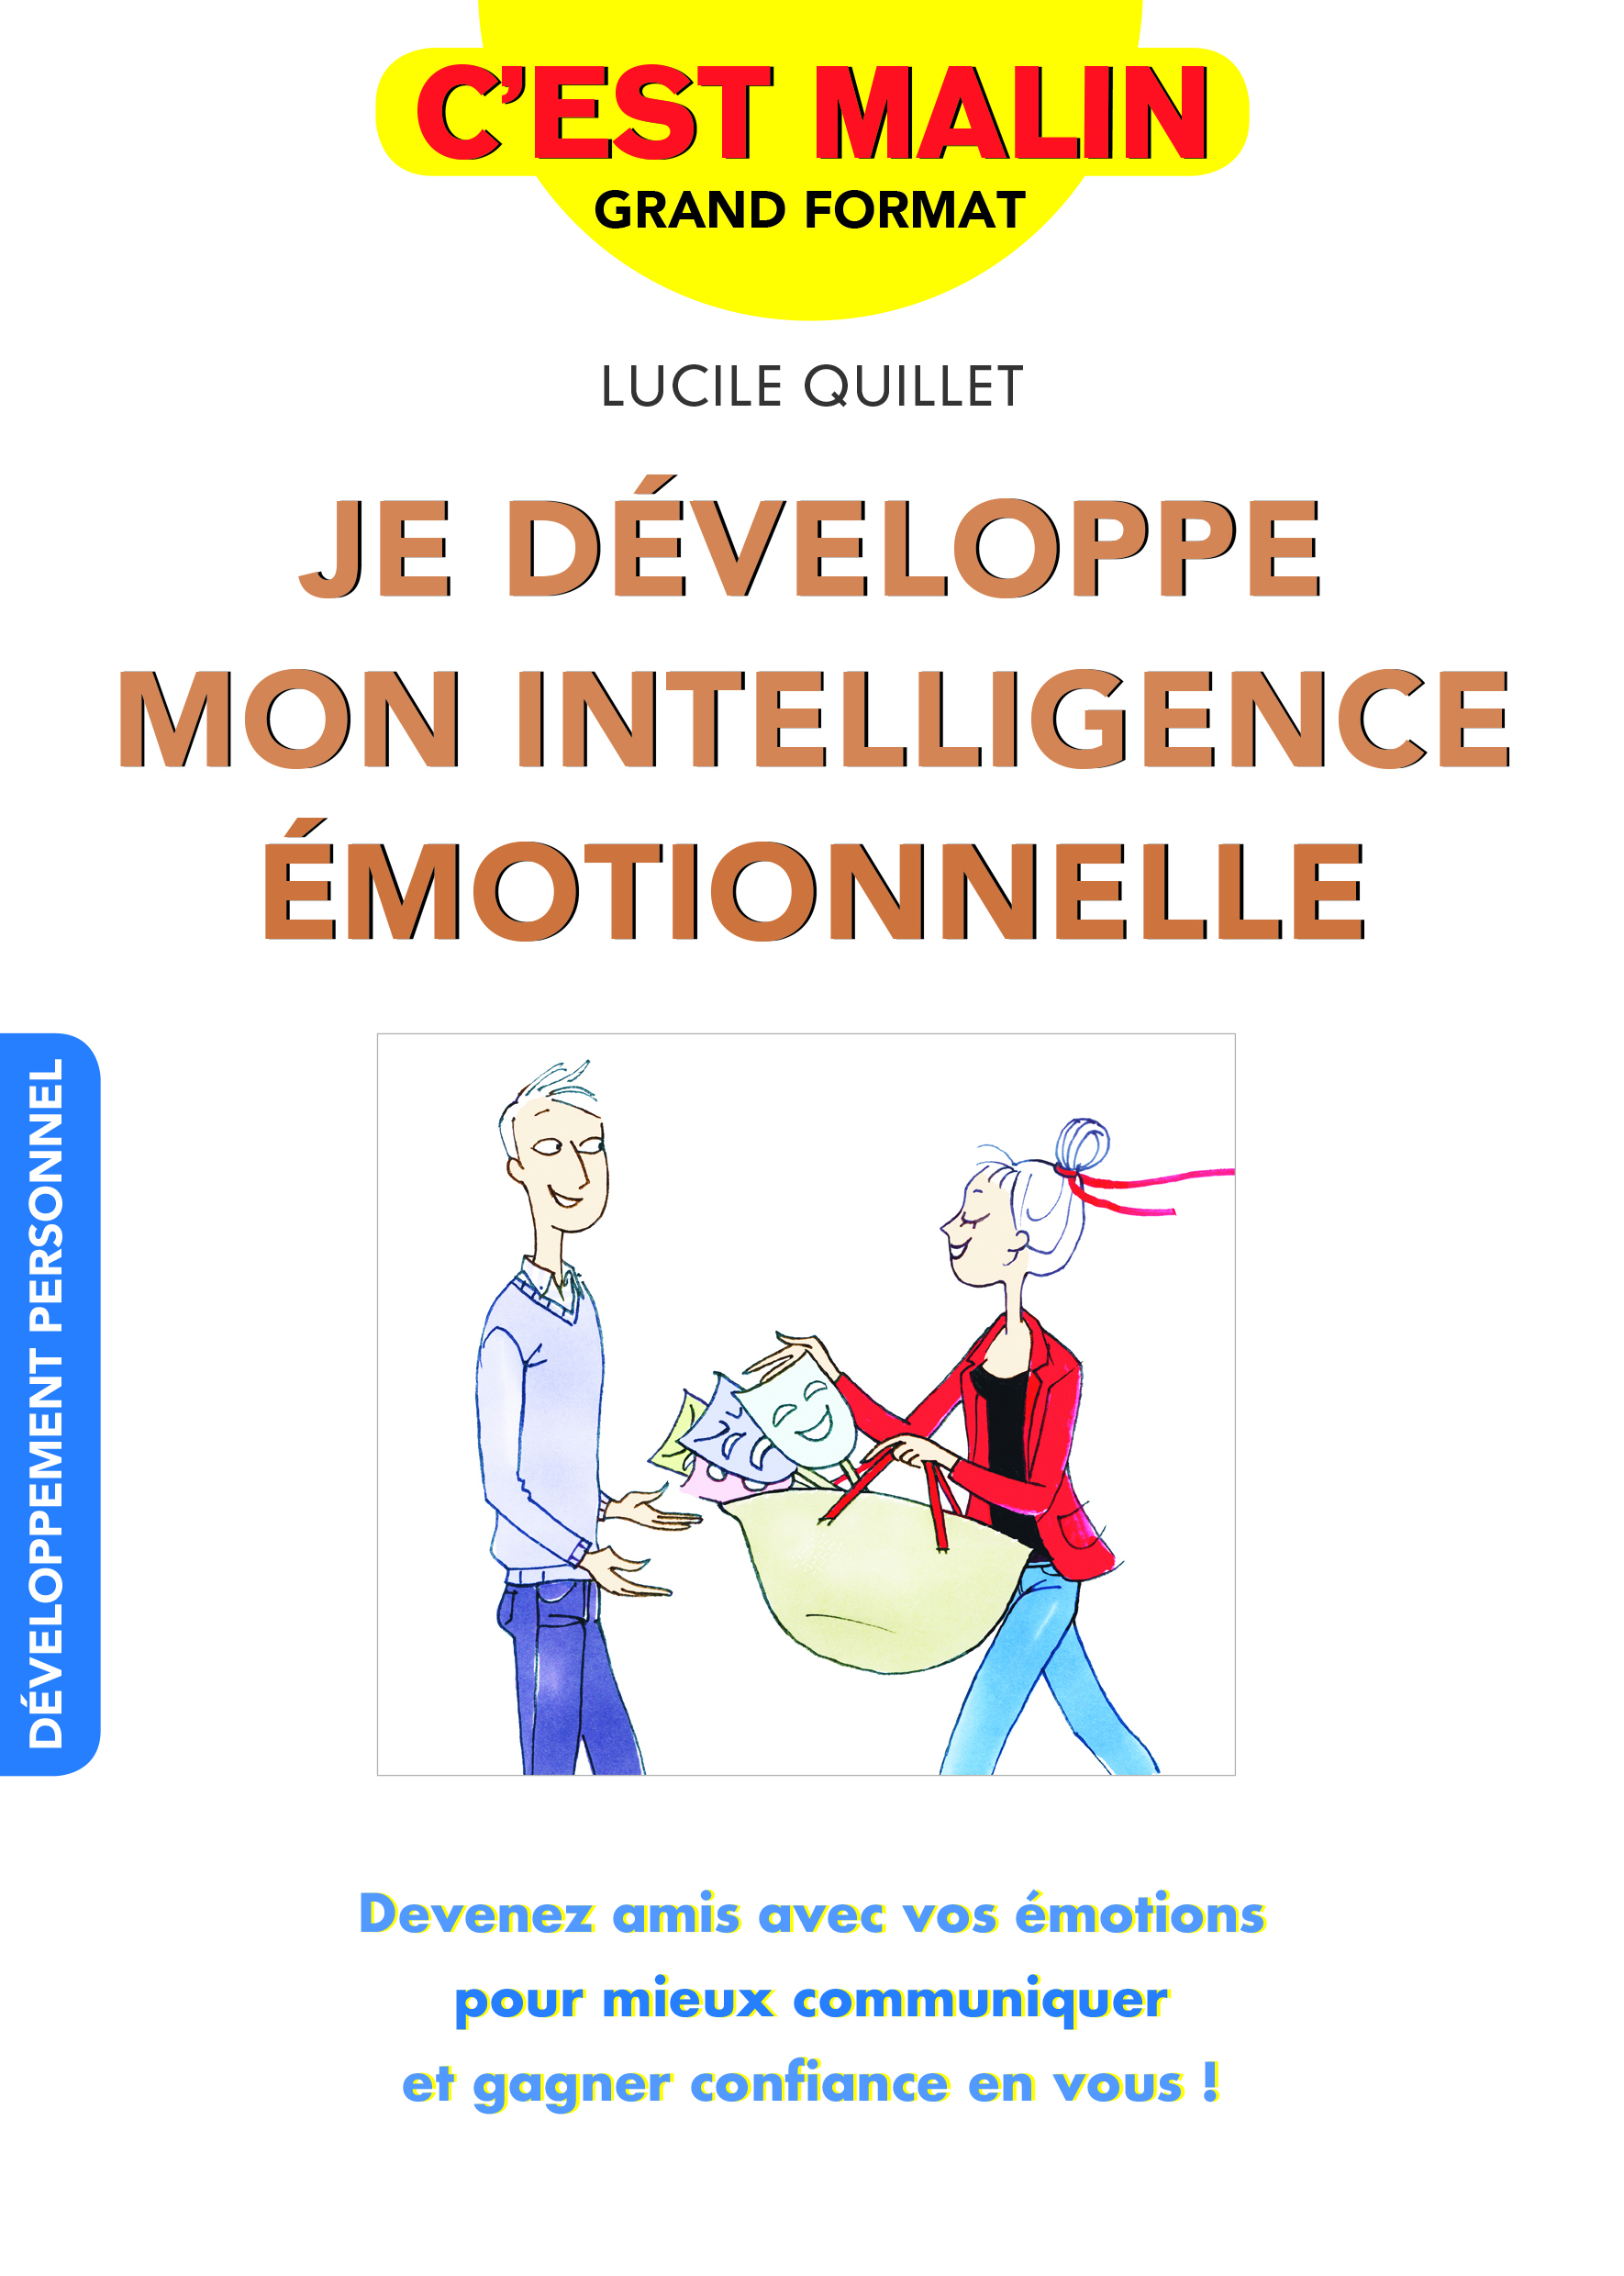 JE DEVELOPPE MON INTELLIGENCE EMOTIONNELLE C'EST MALIN